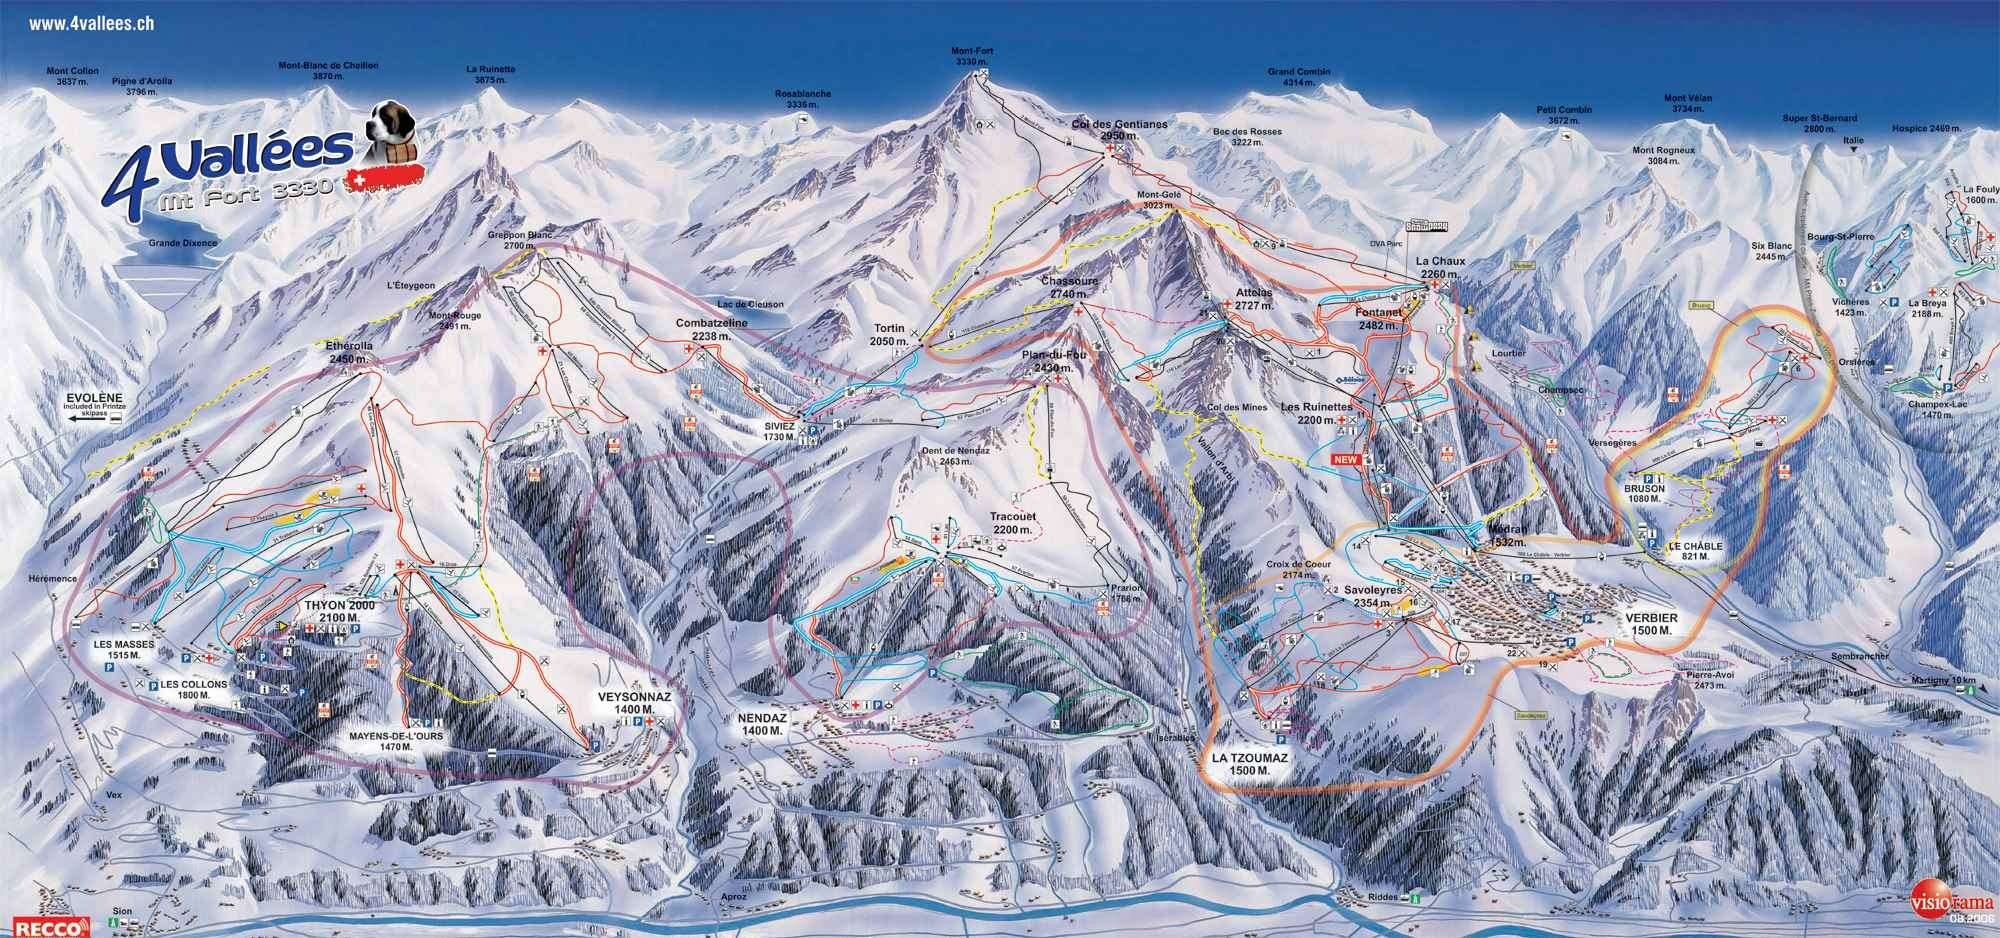 Verbier piste guide map showing runs according to their difficulty